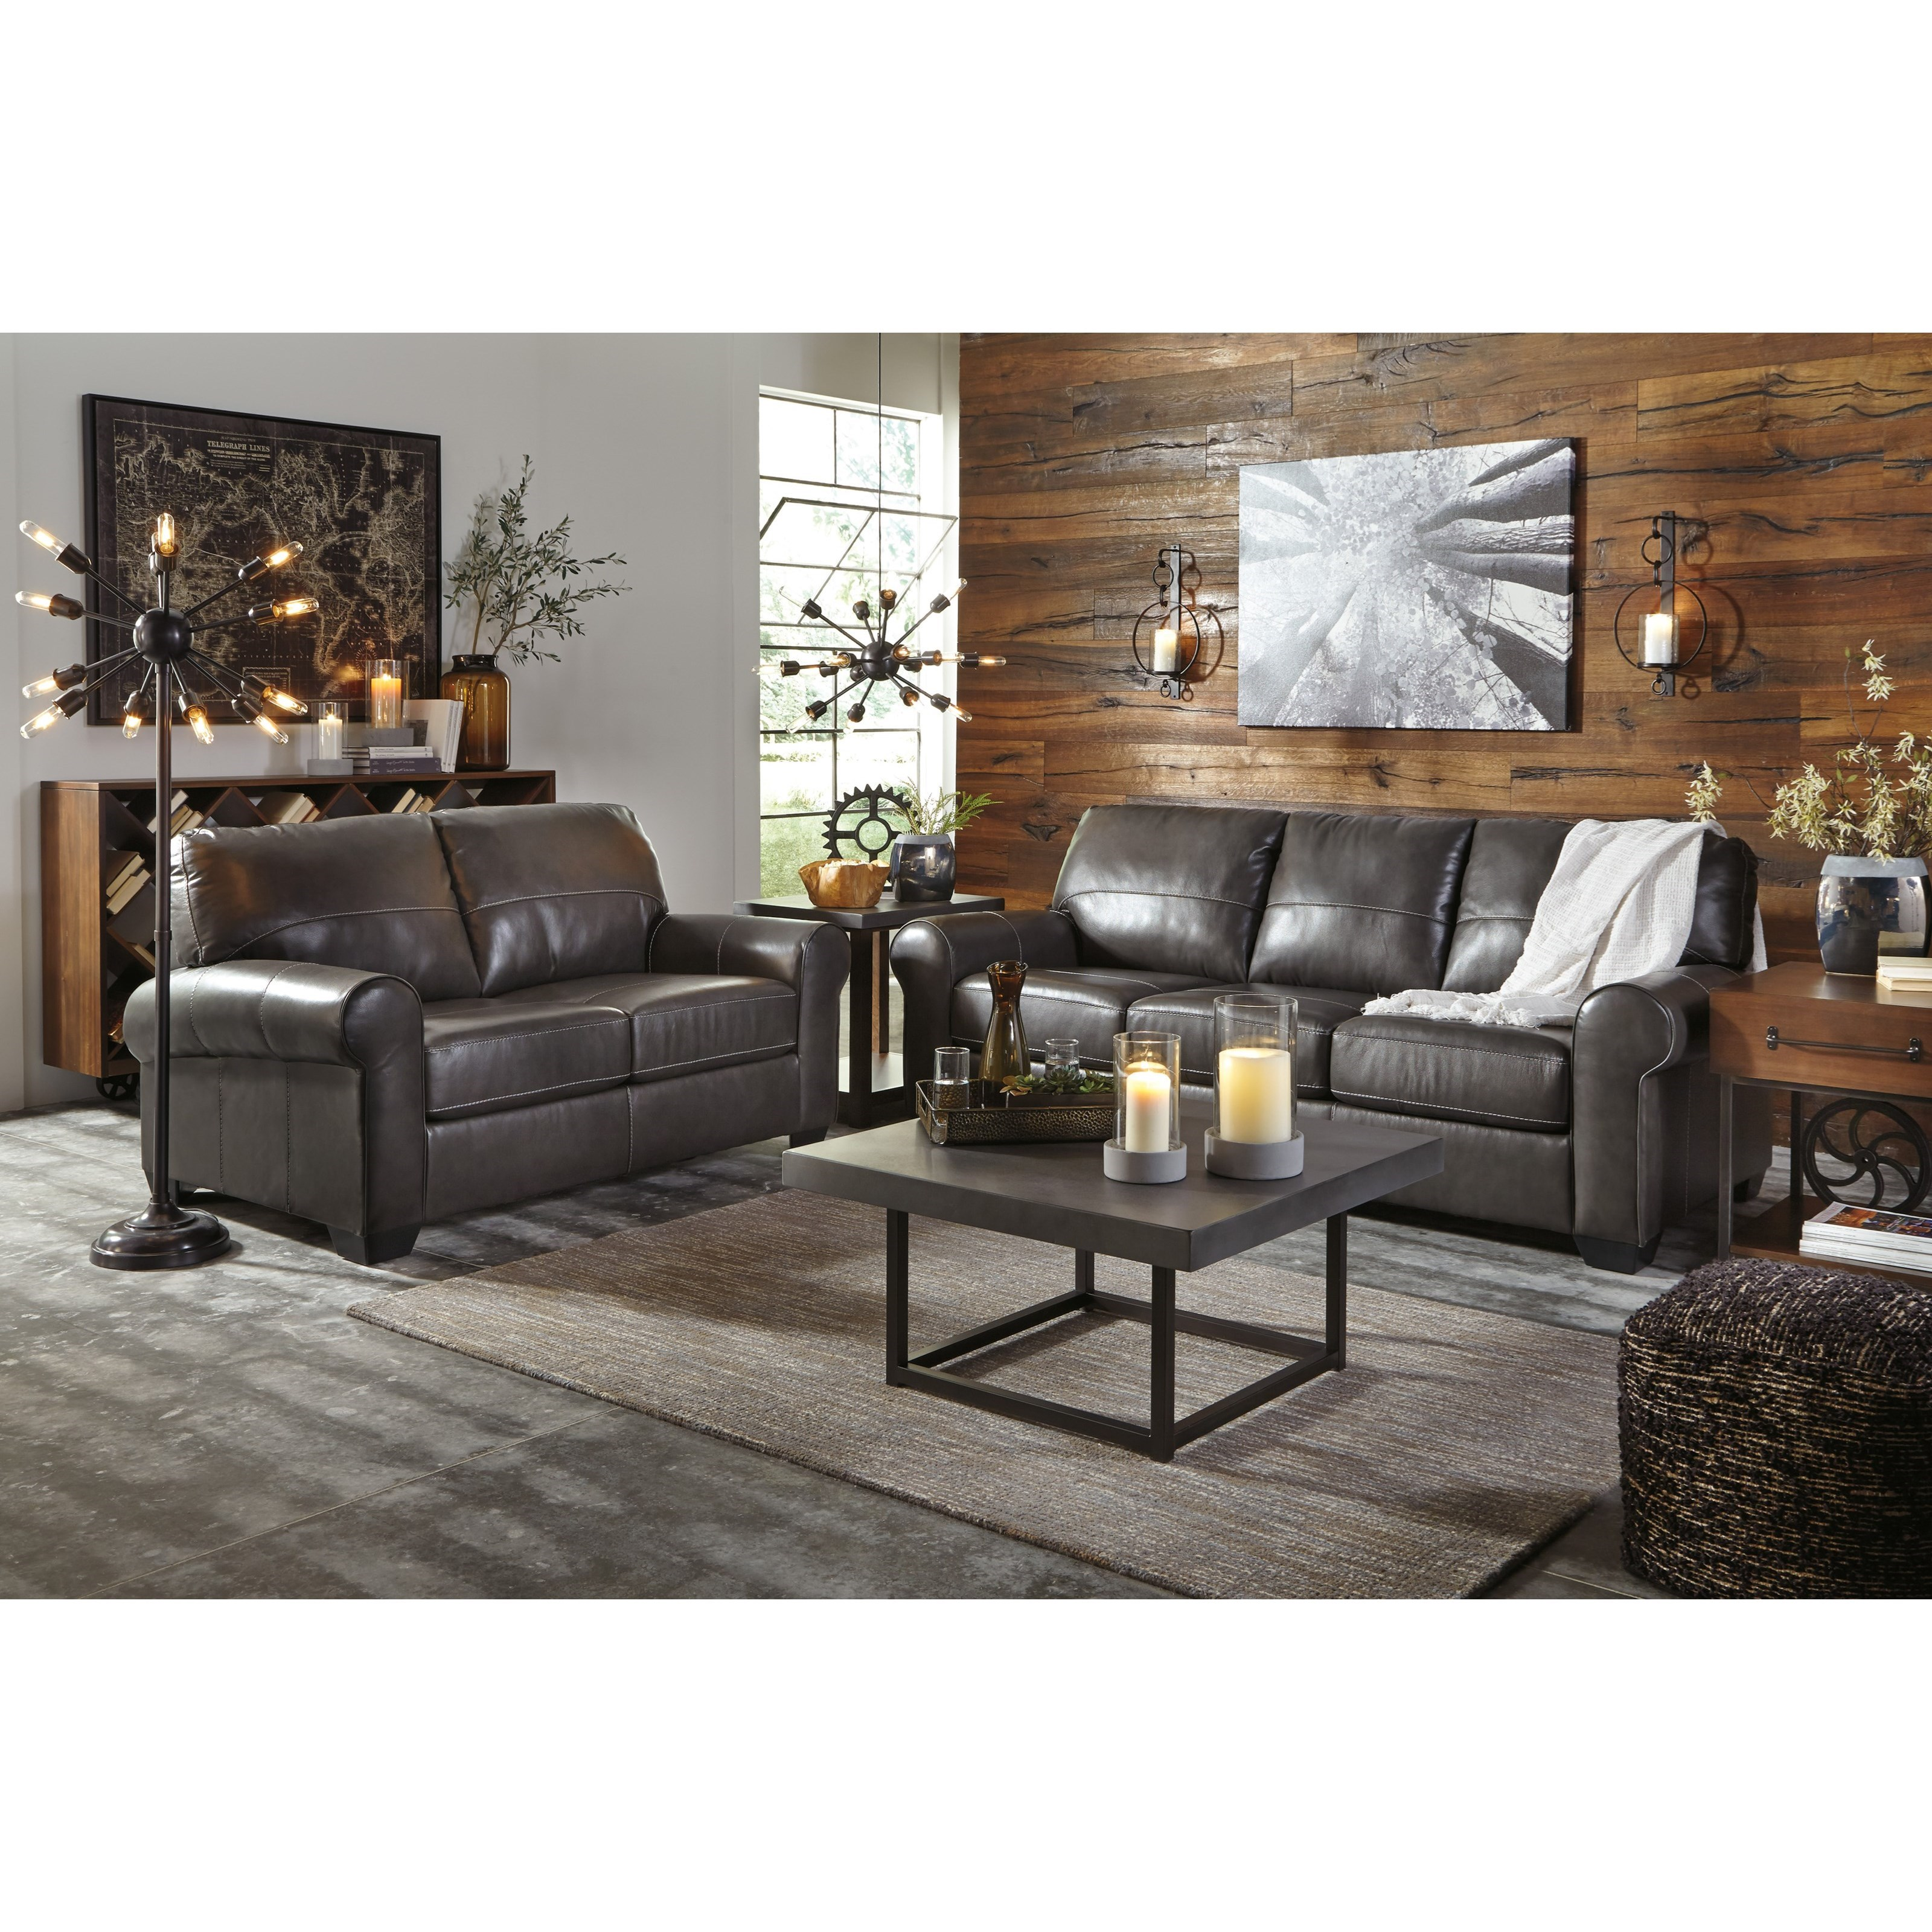 Benchcraft Canterelli Leather Match Sofa With Rolled Arms